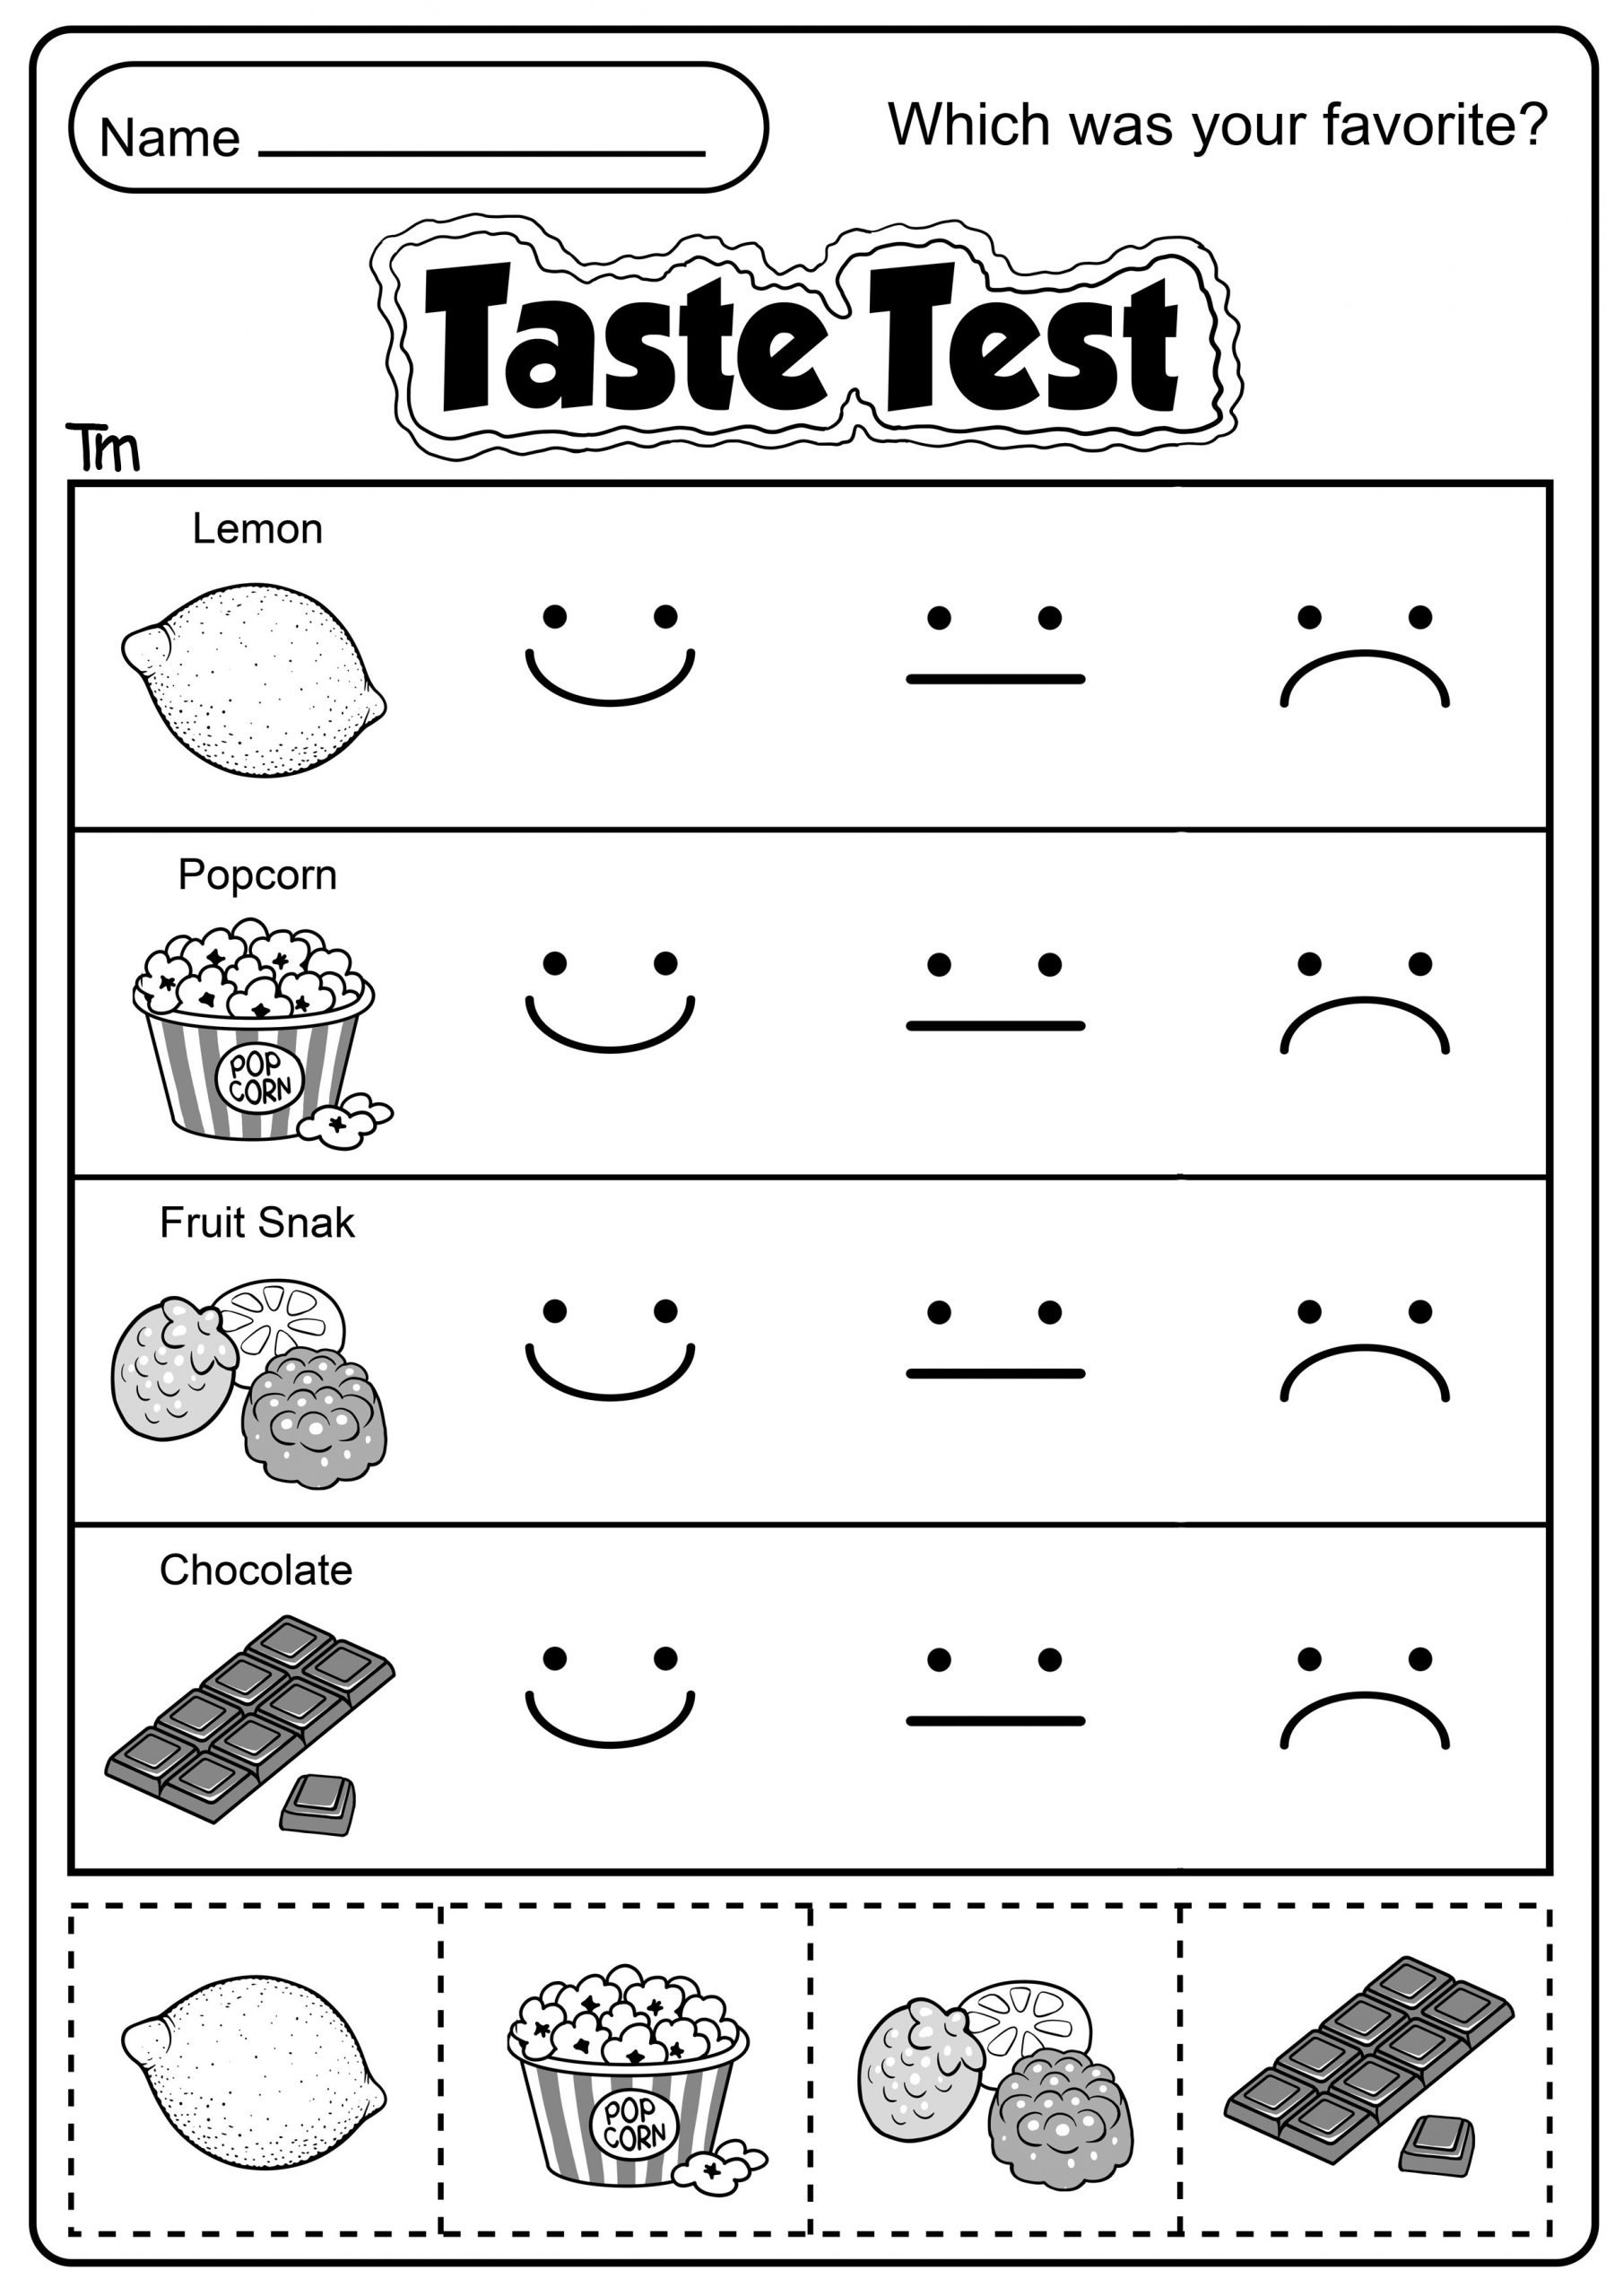 5 Senses Kindergarten Worksheets the Five Senses Taste Test Teachersmag